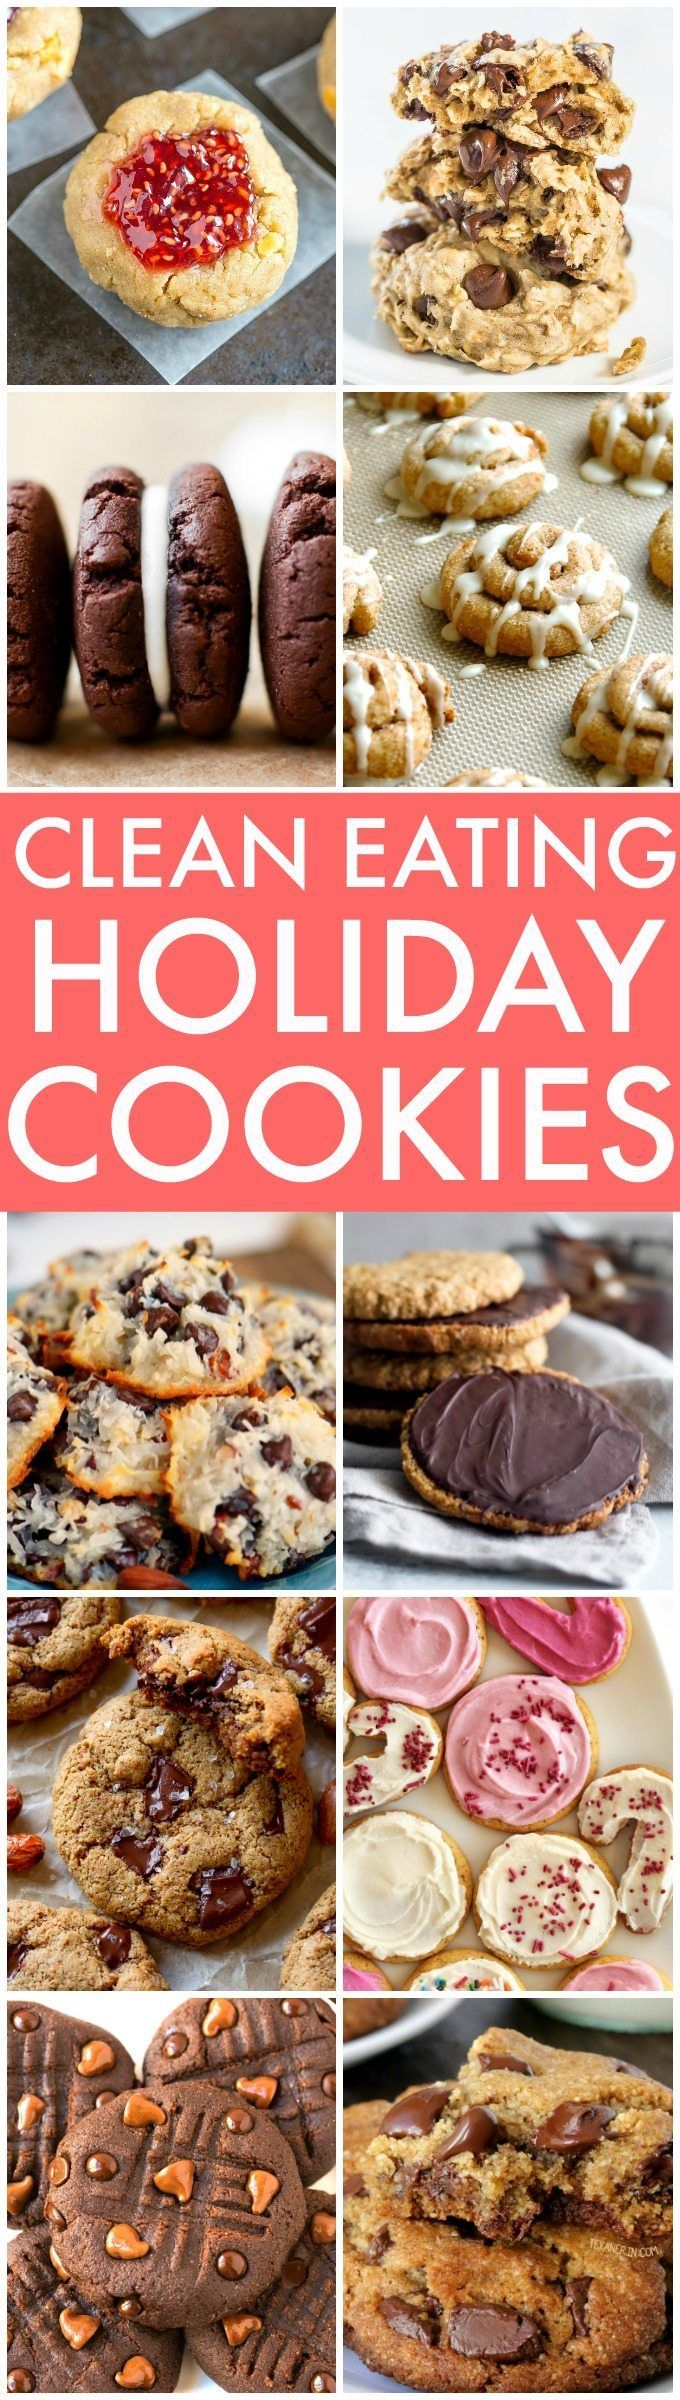 Free quick and easy holiday cookie recipes